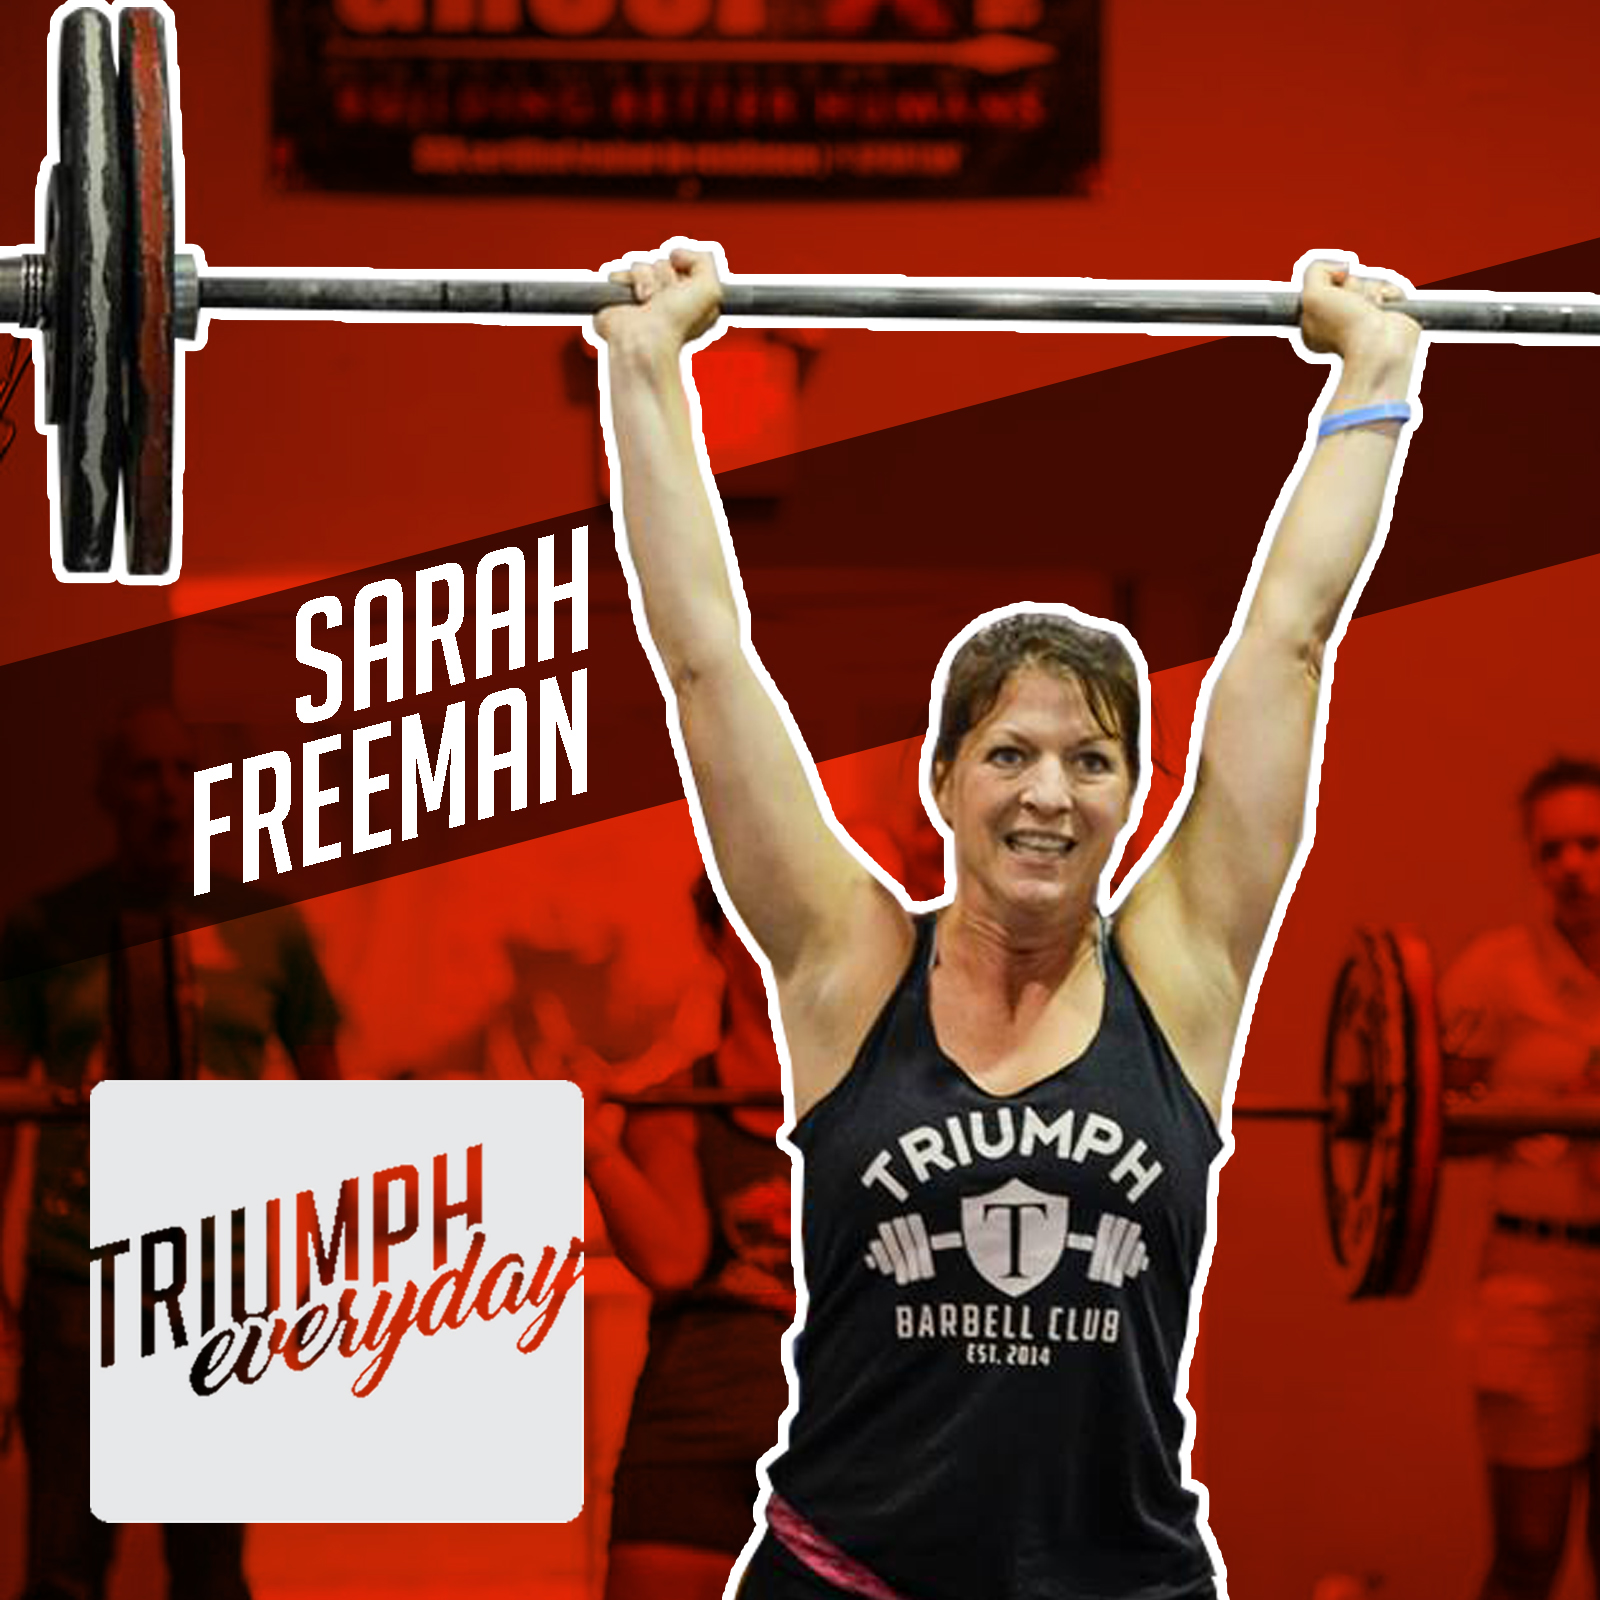 Triumph Everyday sarah Soundcloud